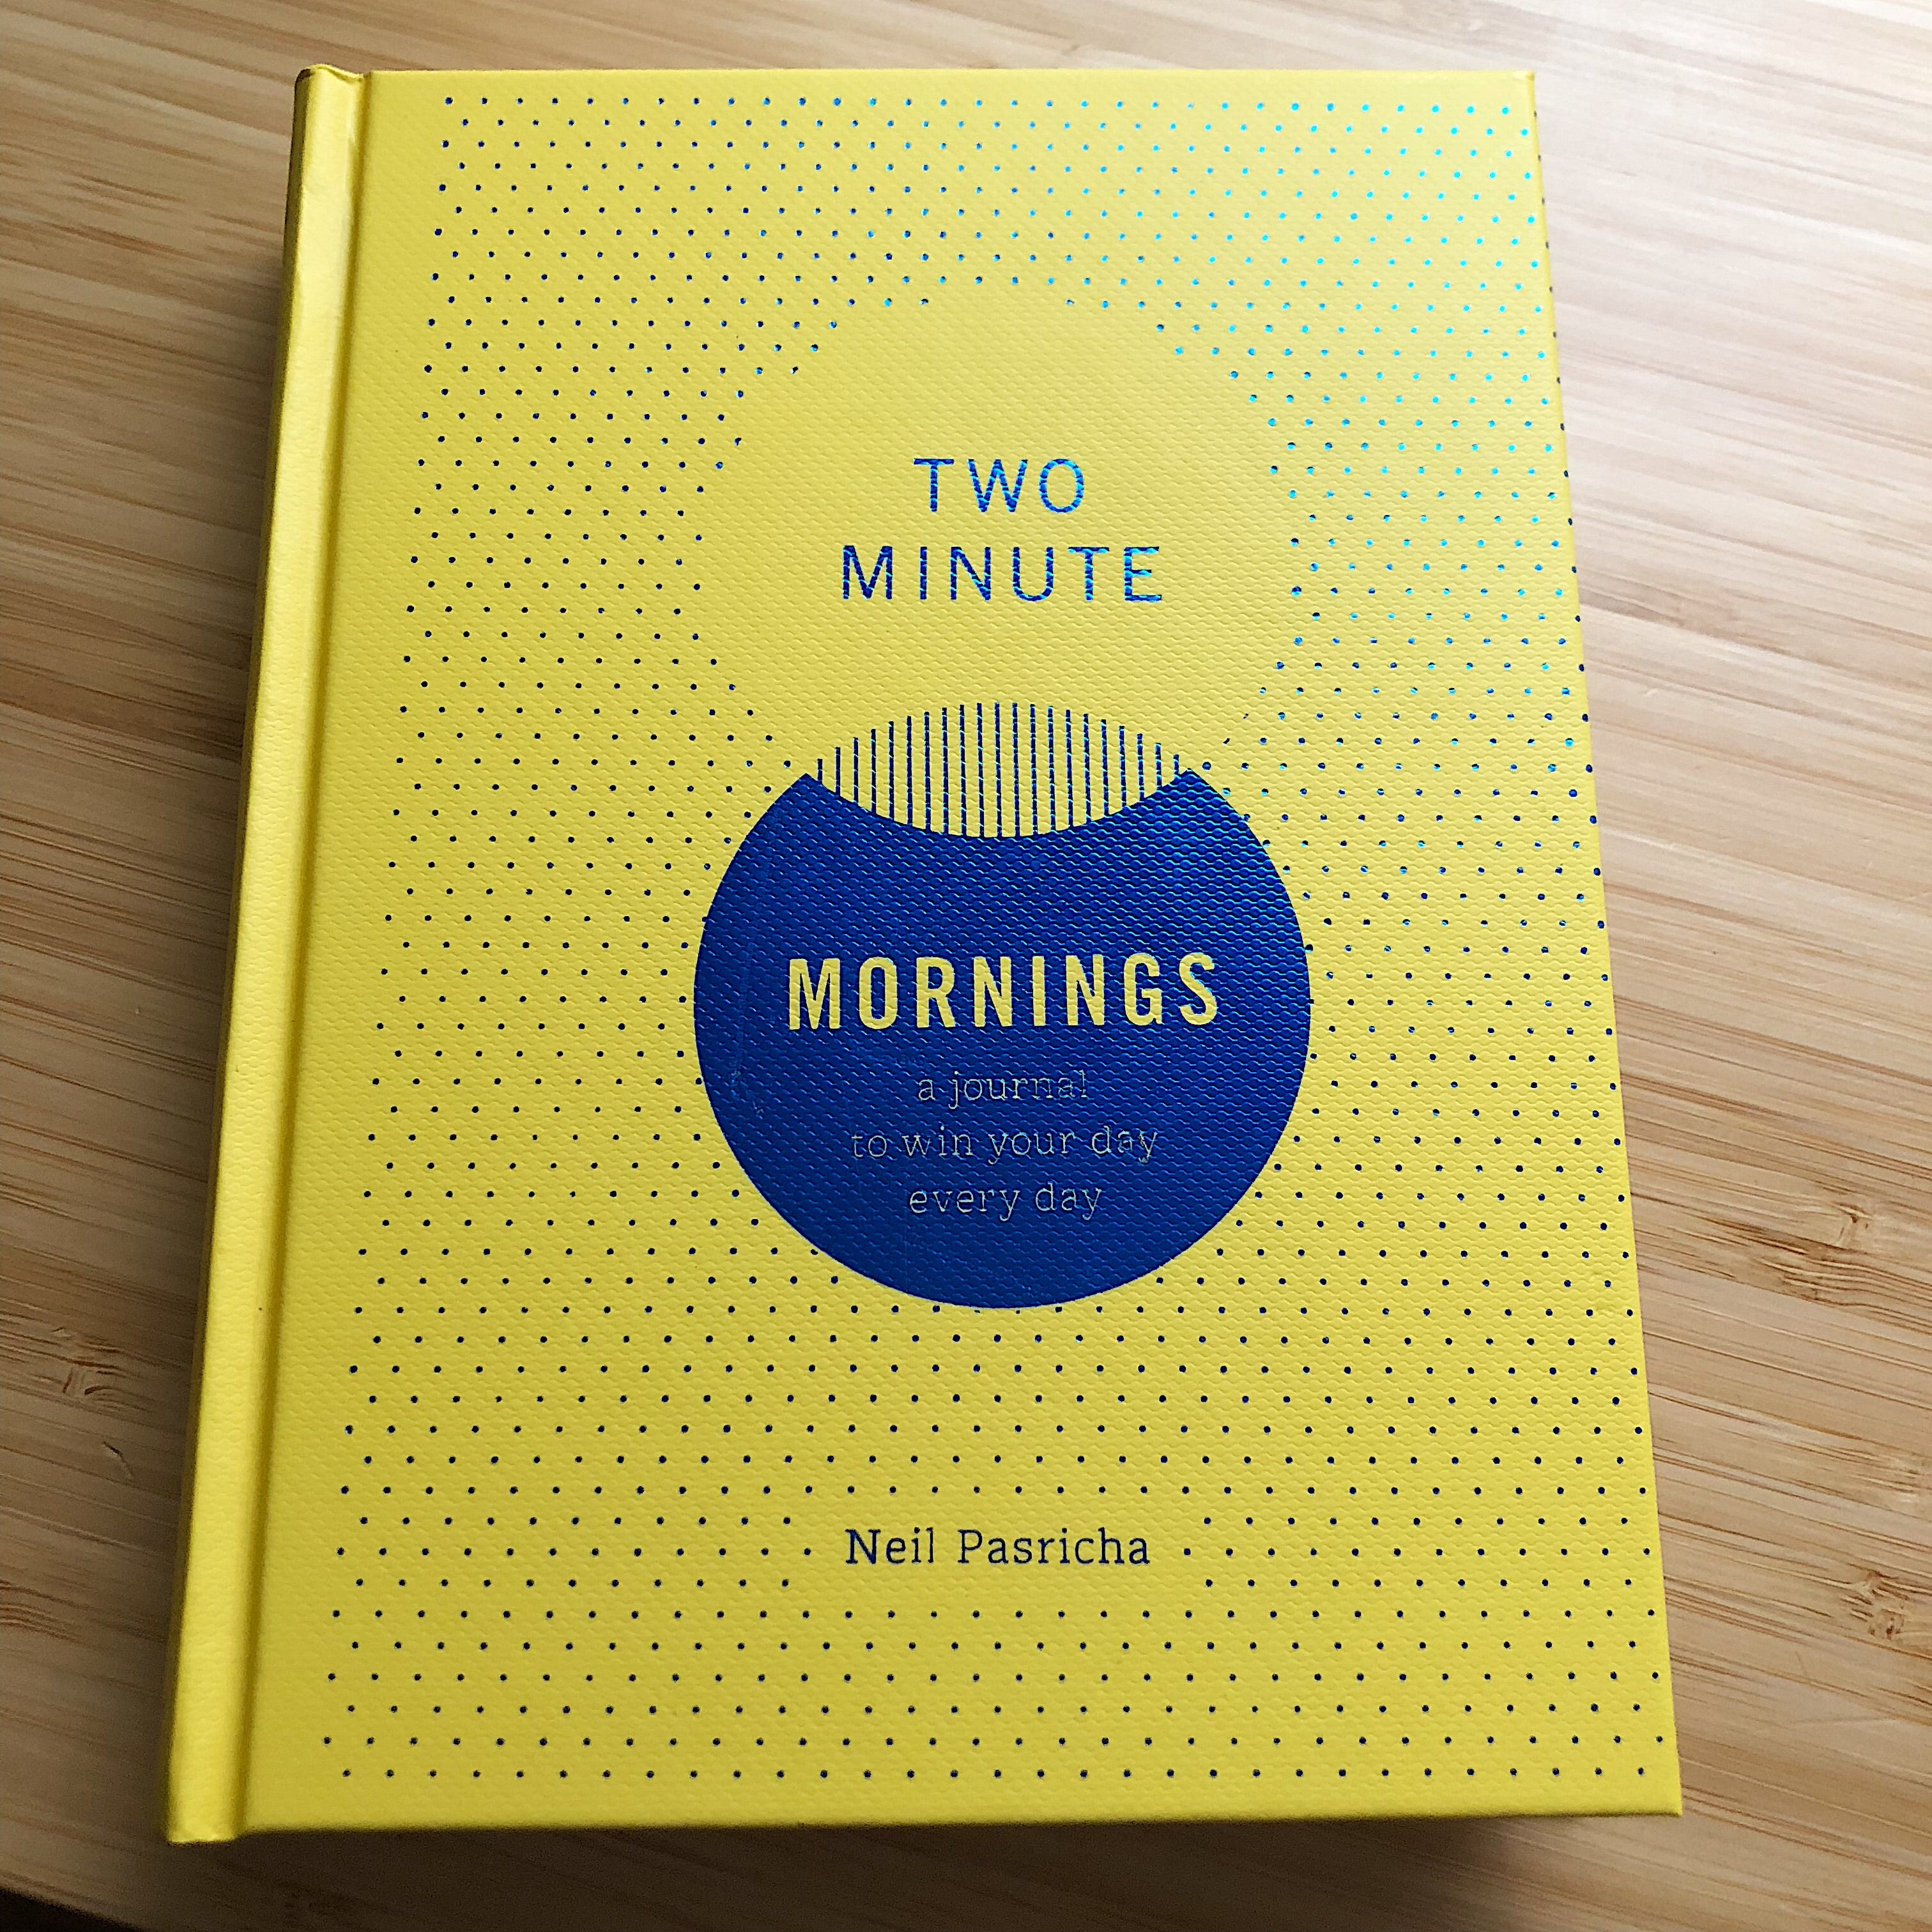 Two Minute Mornings: a journal to wind your day every day // By Neil Pasricha